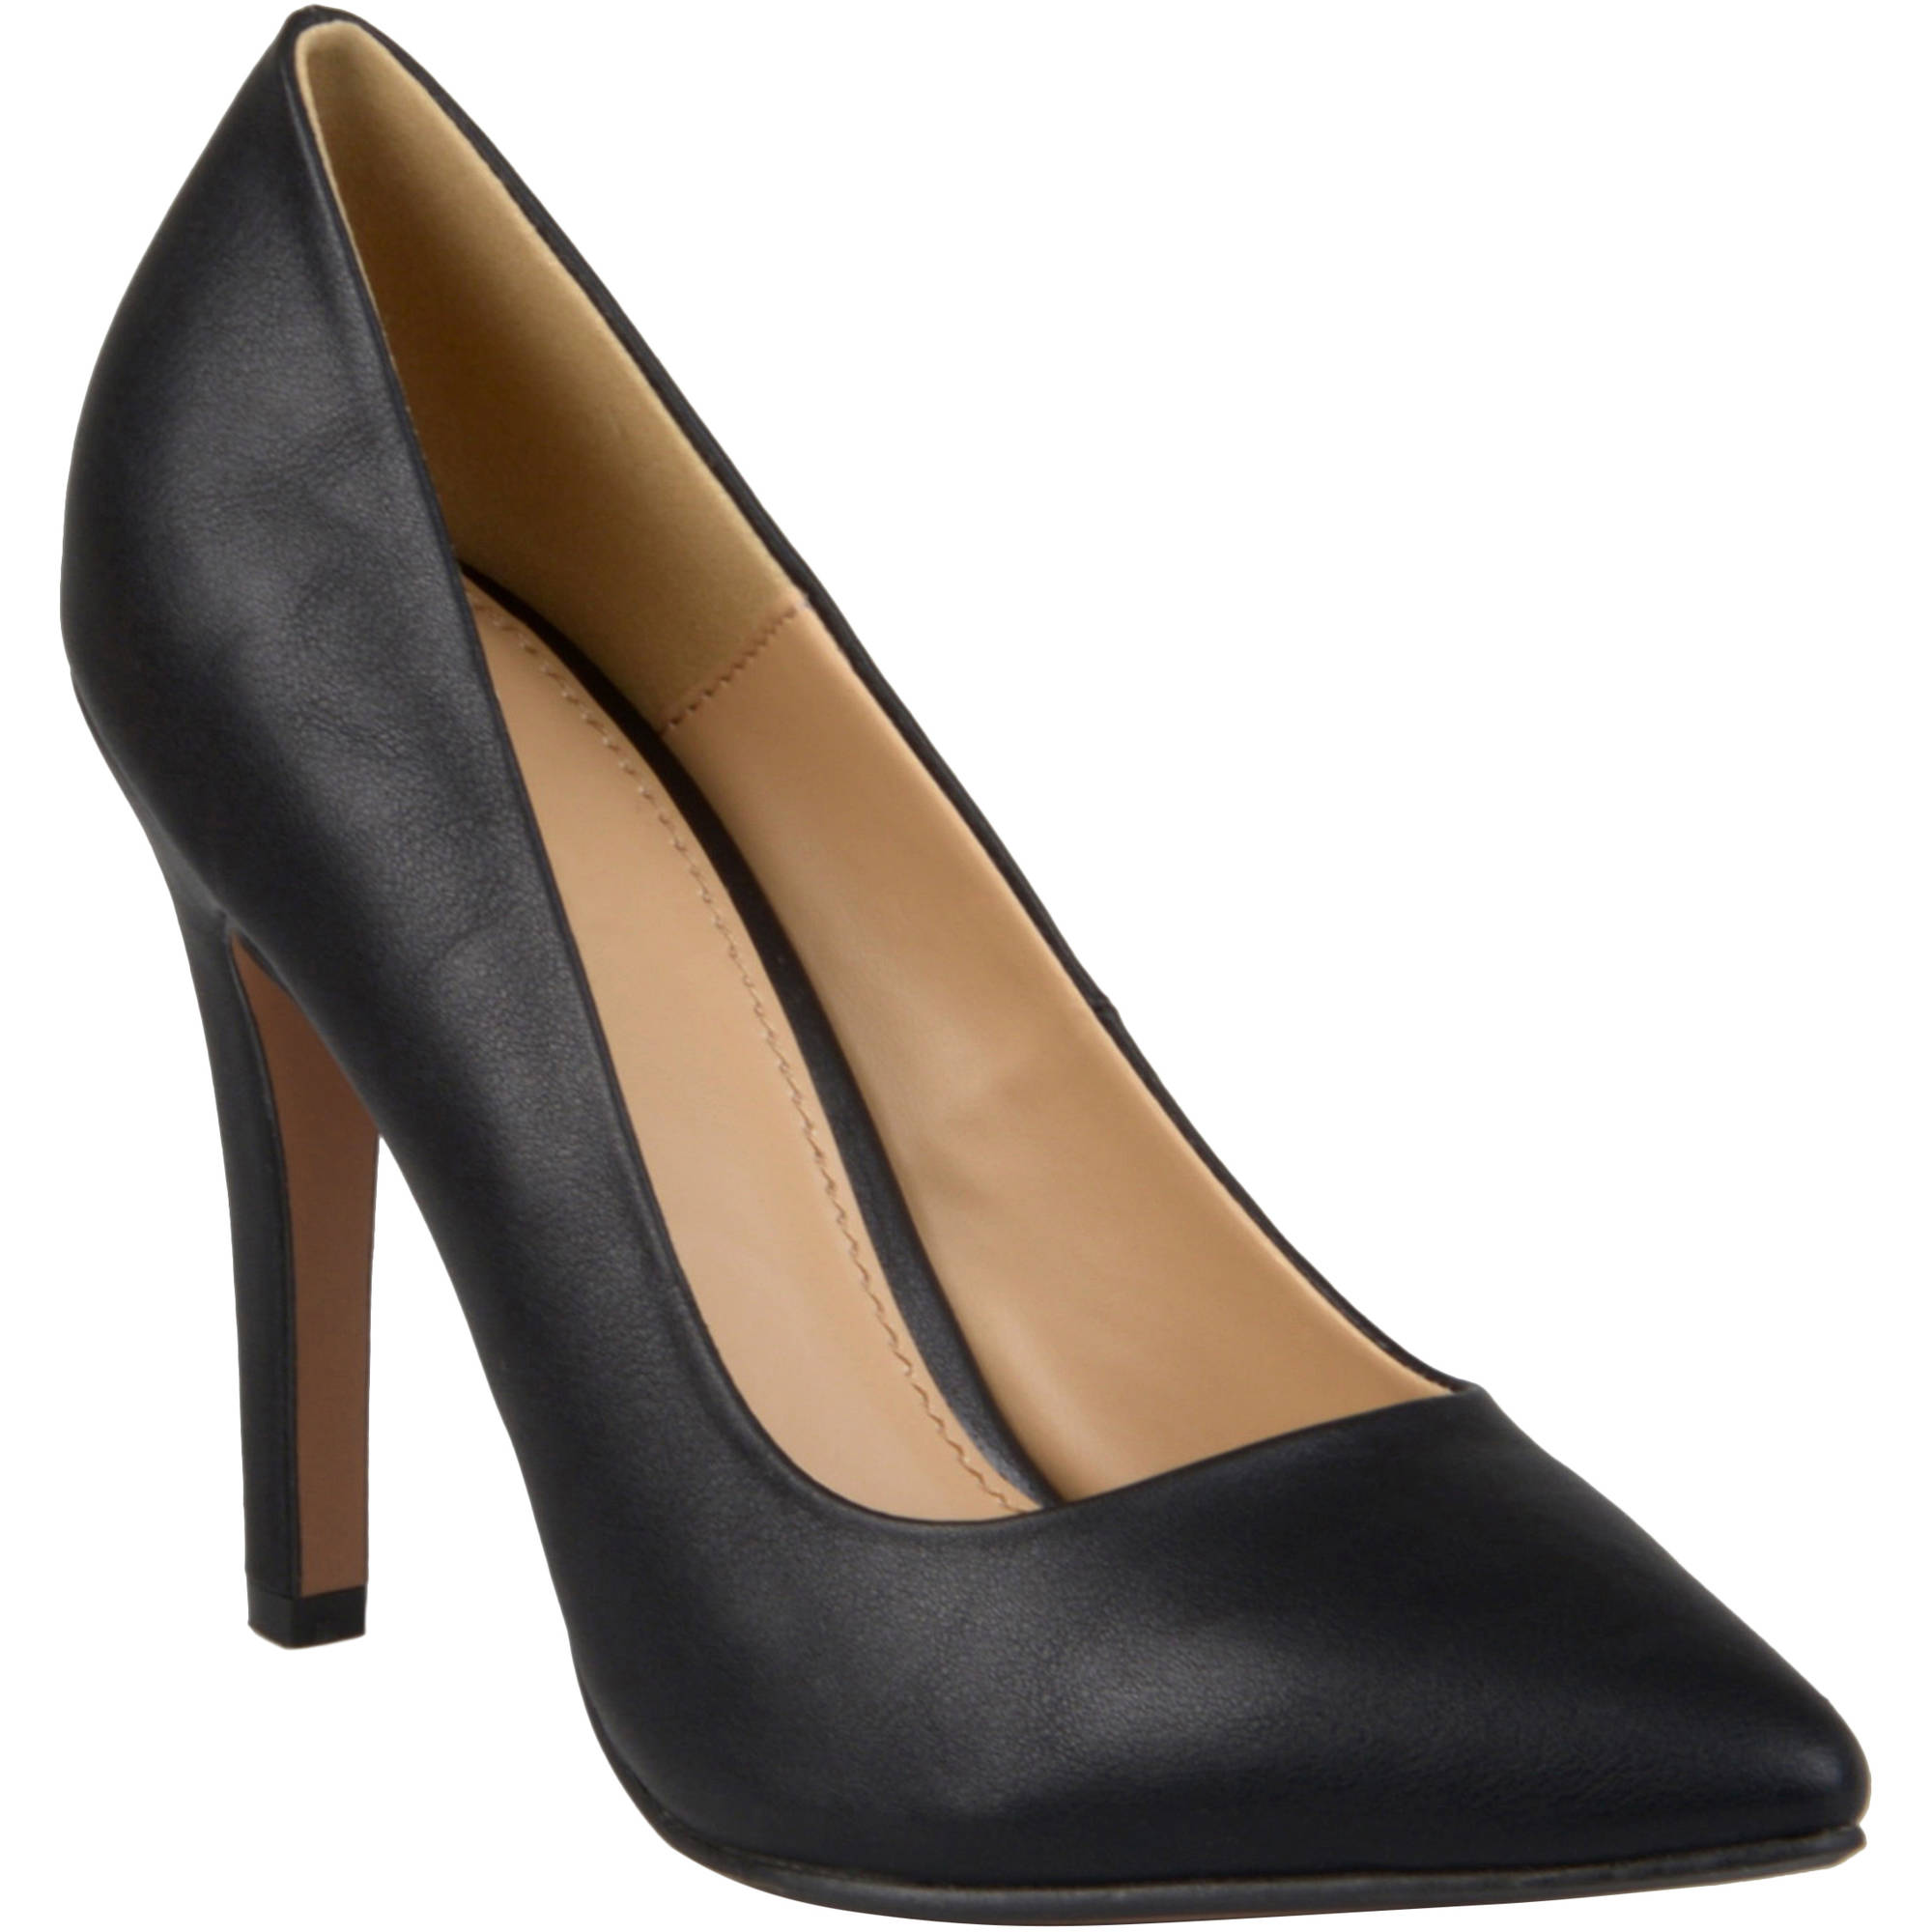 Brinley Co. Womens Wide Width Pointed Matte Finish Pumps